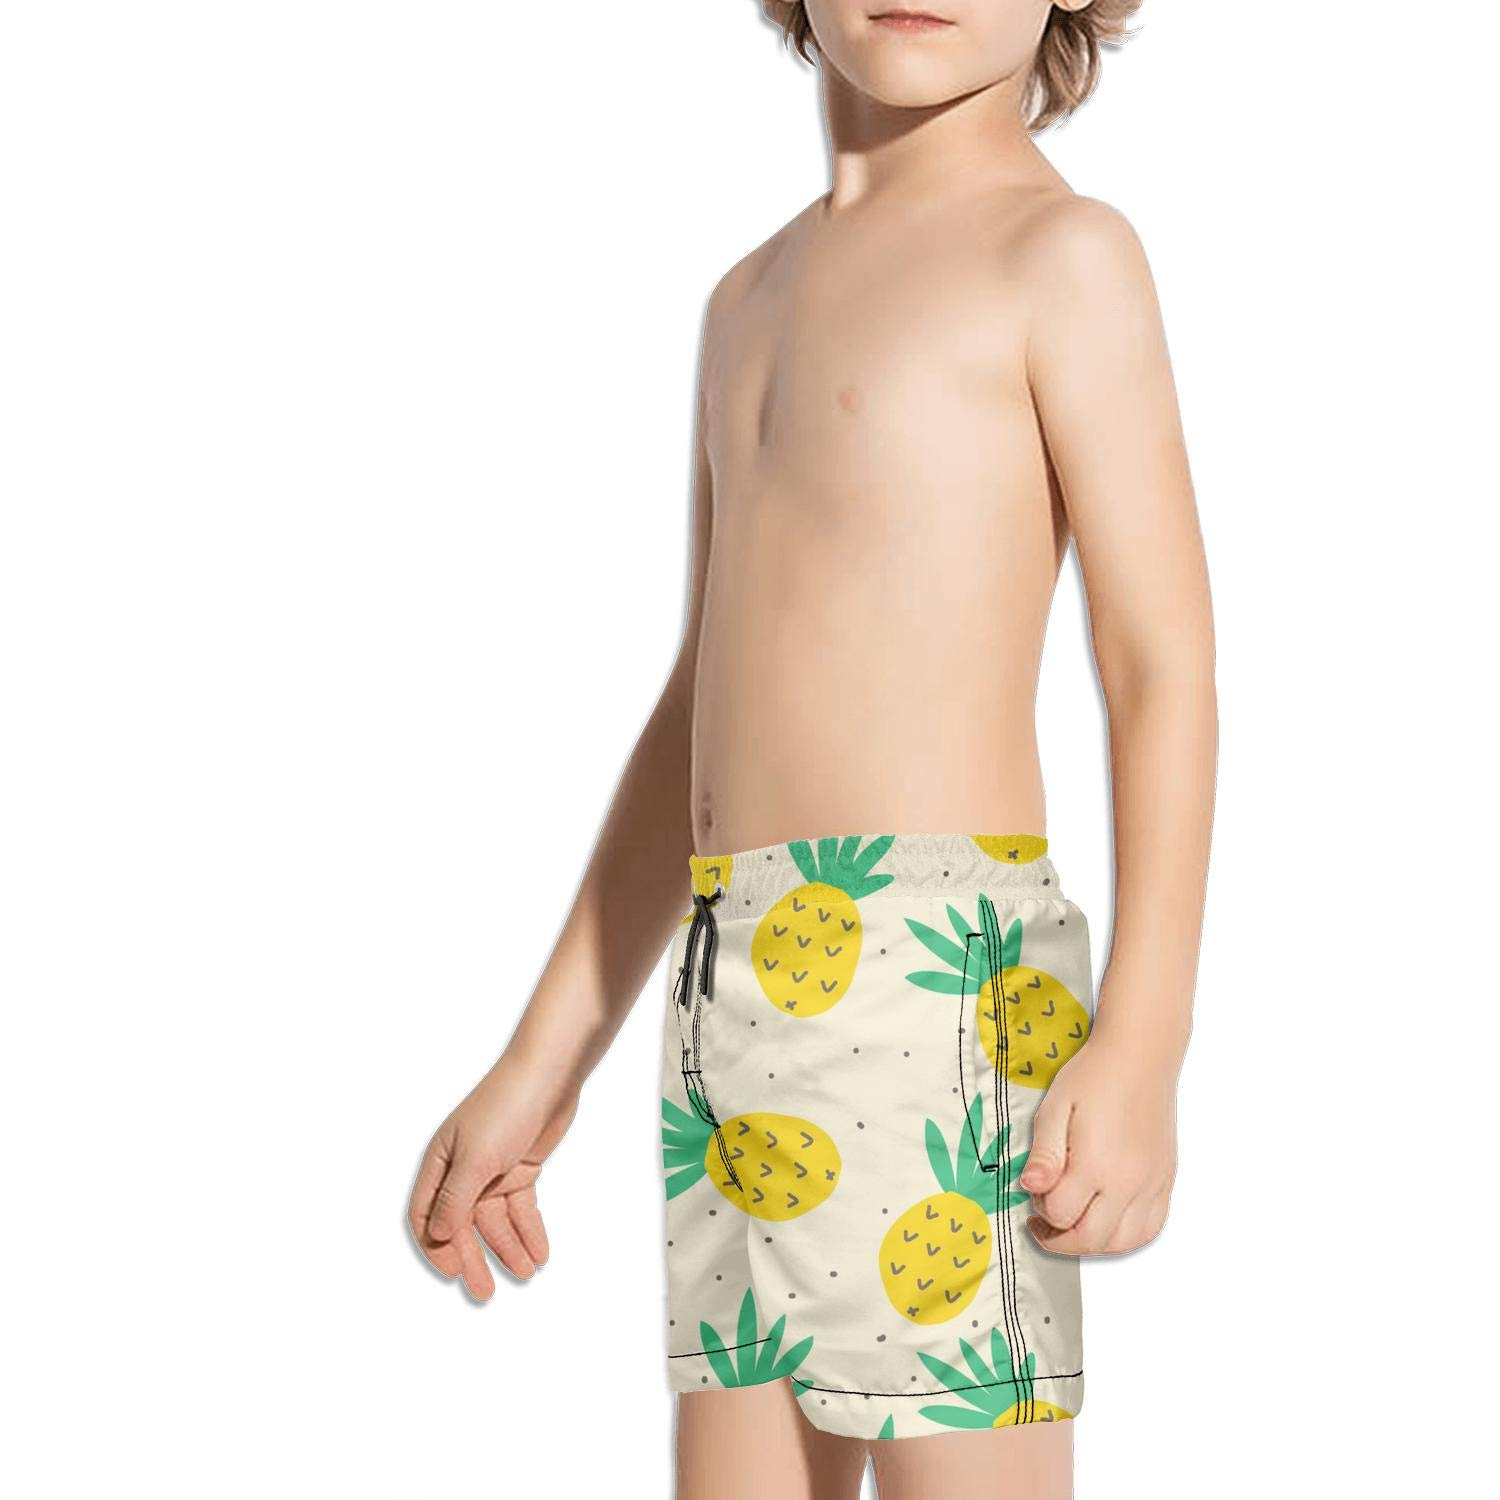 DSDRFE2DEW Swimming Trunks Colorful and Beautiful Pineapple Tree Sporty Shorts for boyswith Drawstring